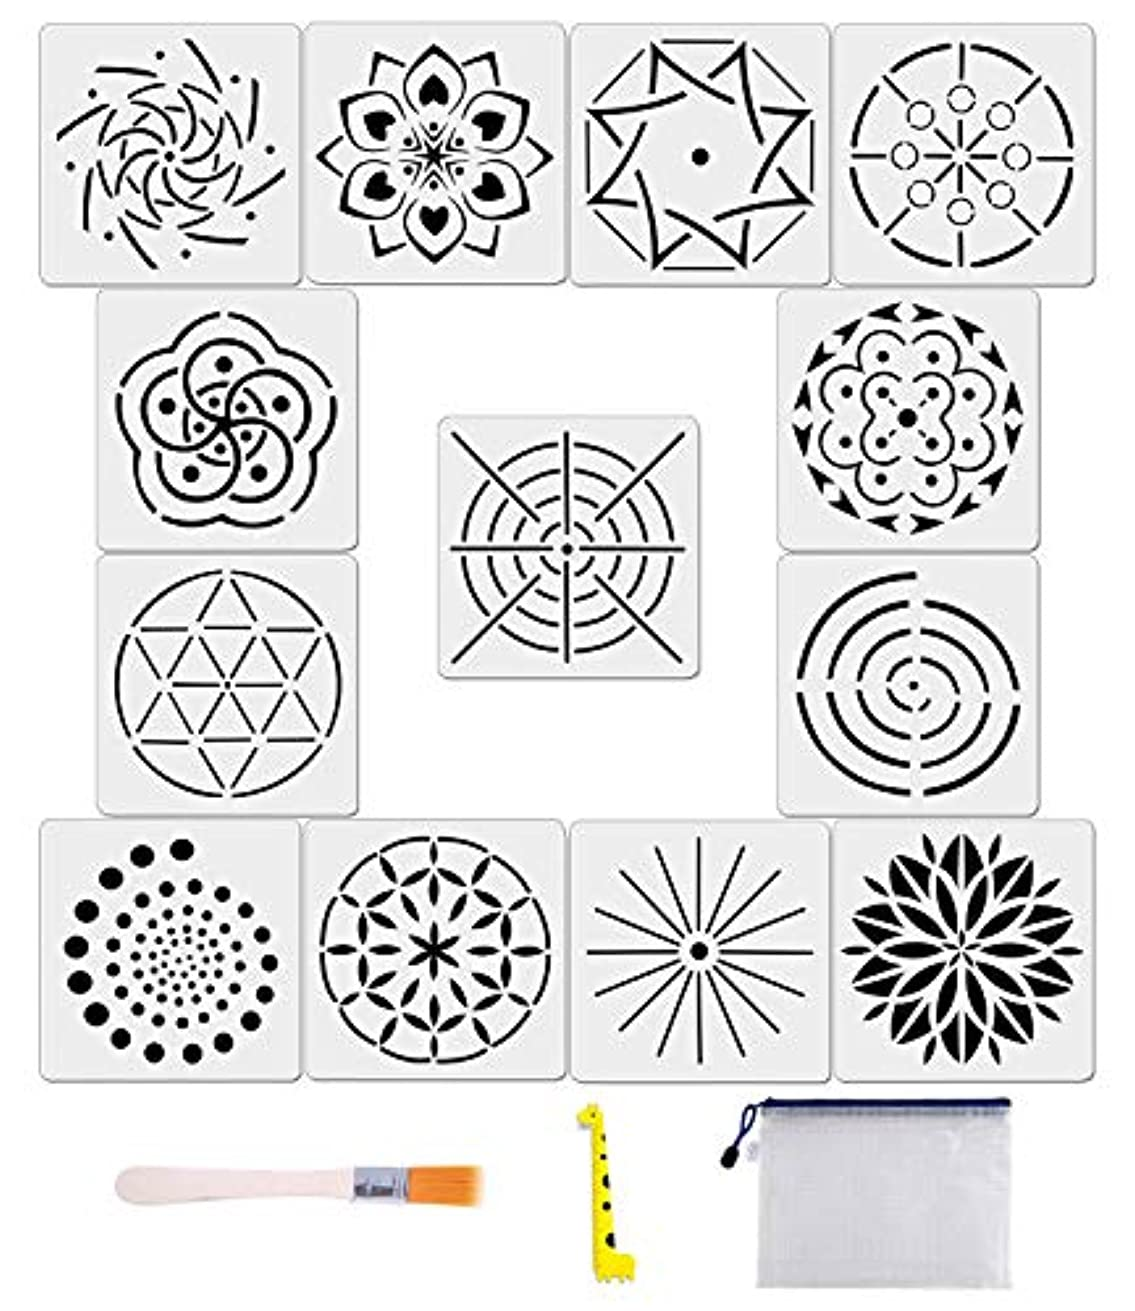 13 Pack Mandala Dot Painting Templates Stencils for DIY Painting Art Projects with Storage Bag/Art Brush/Ruler